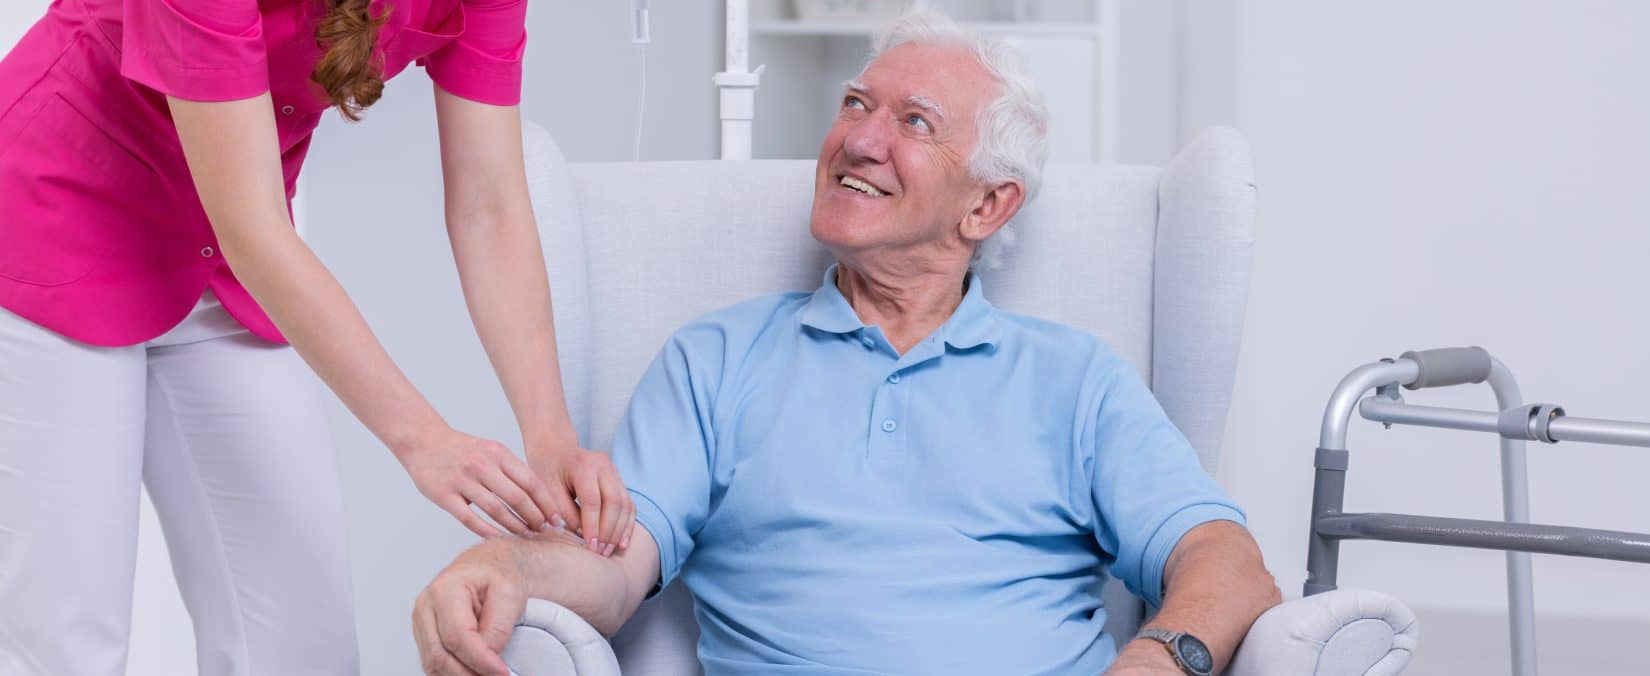 Nurse connecting IV vitamin therapy drip to senior patient